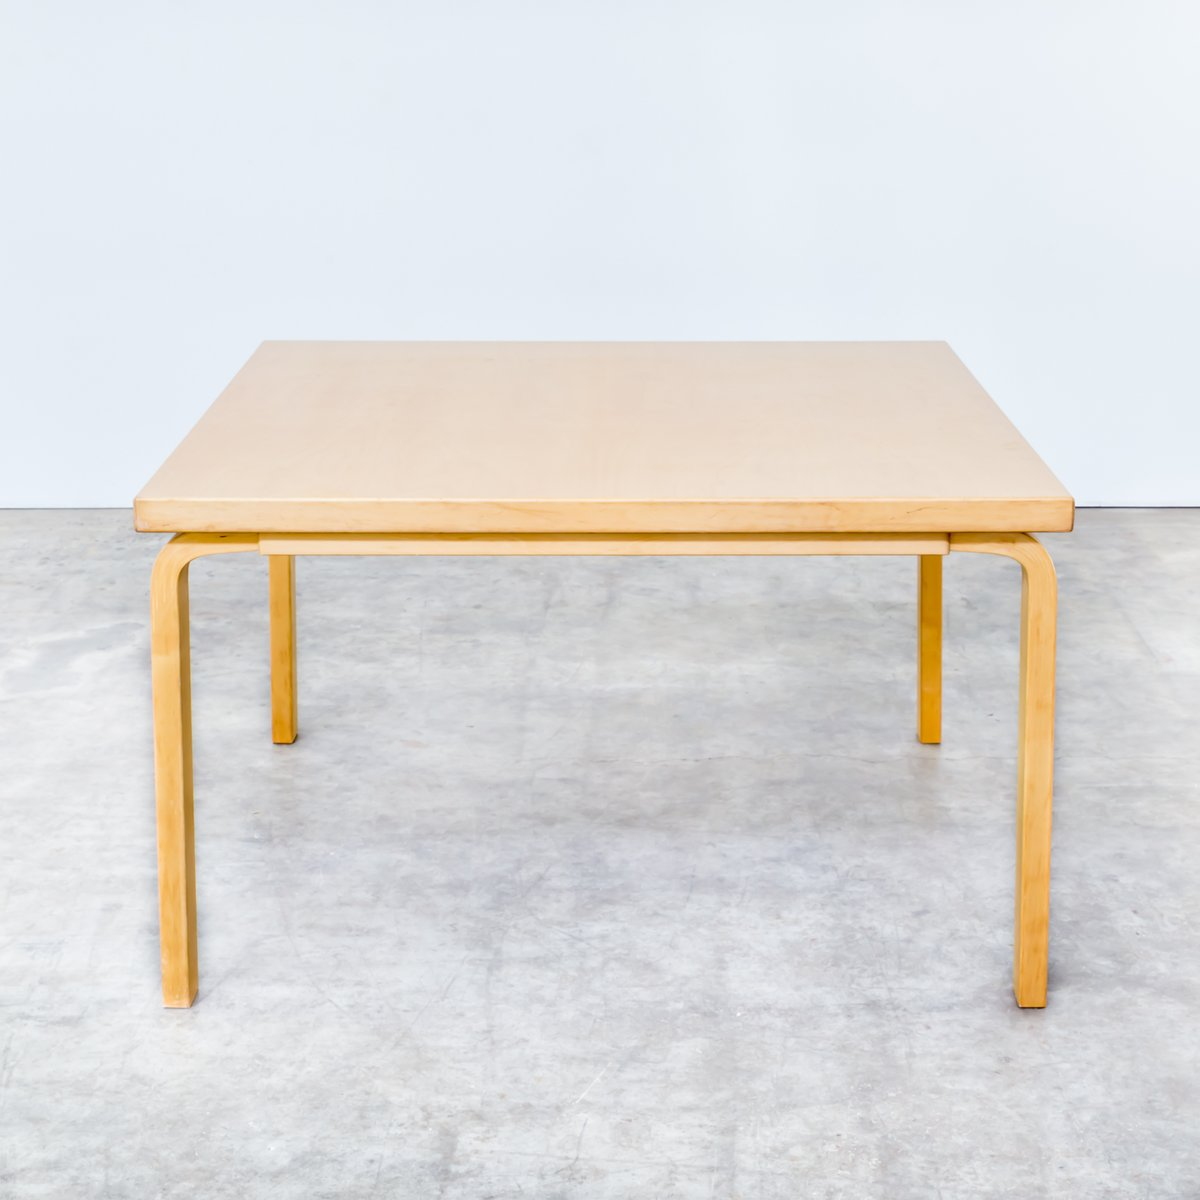 Model 82a dining table by aalvar aalto for artek 1960s for Tinning table model